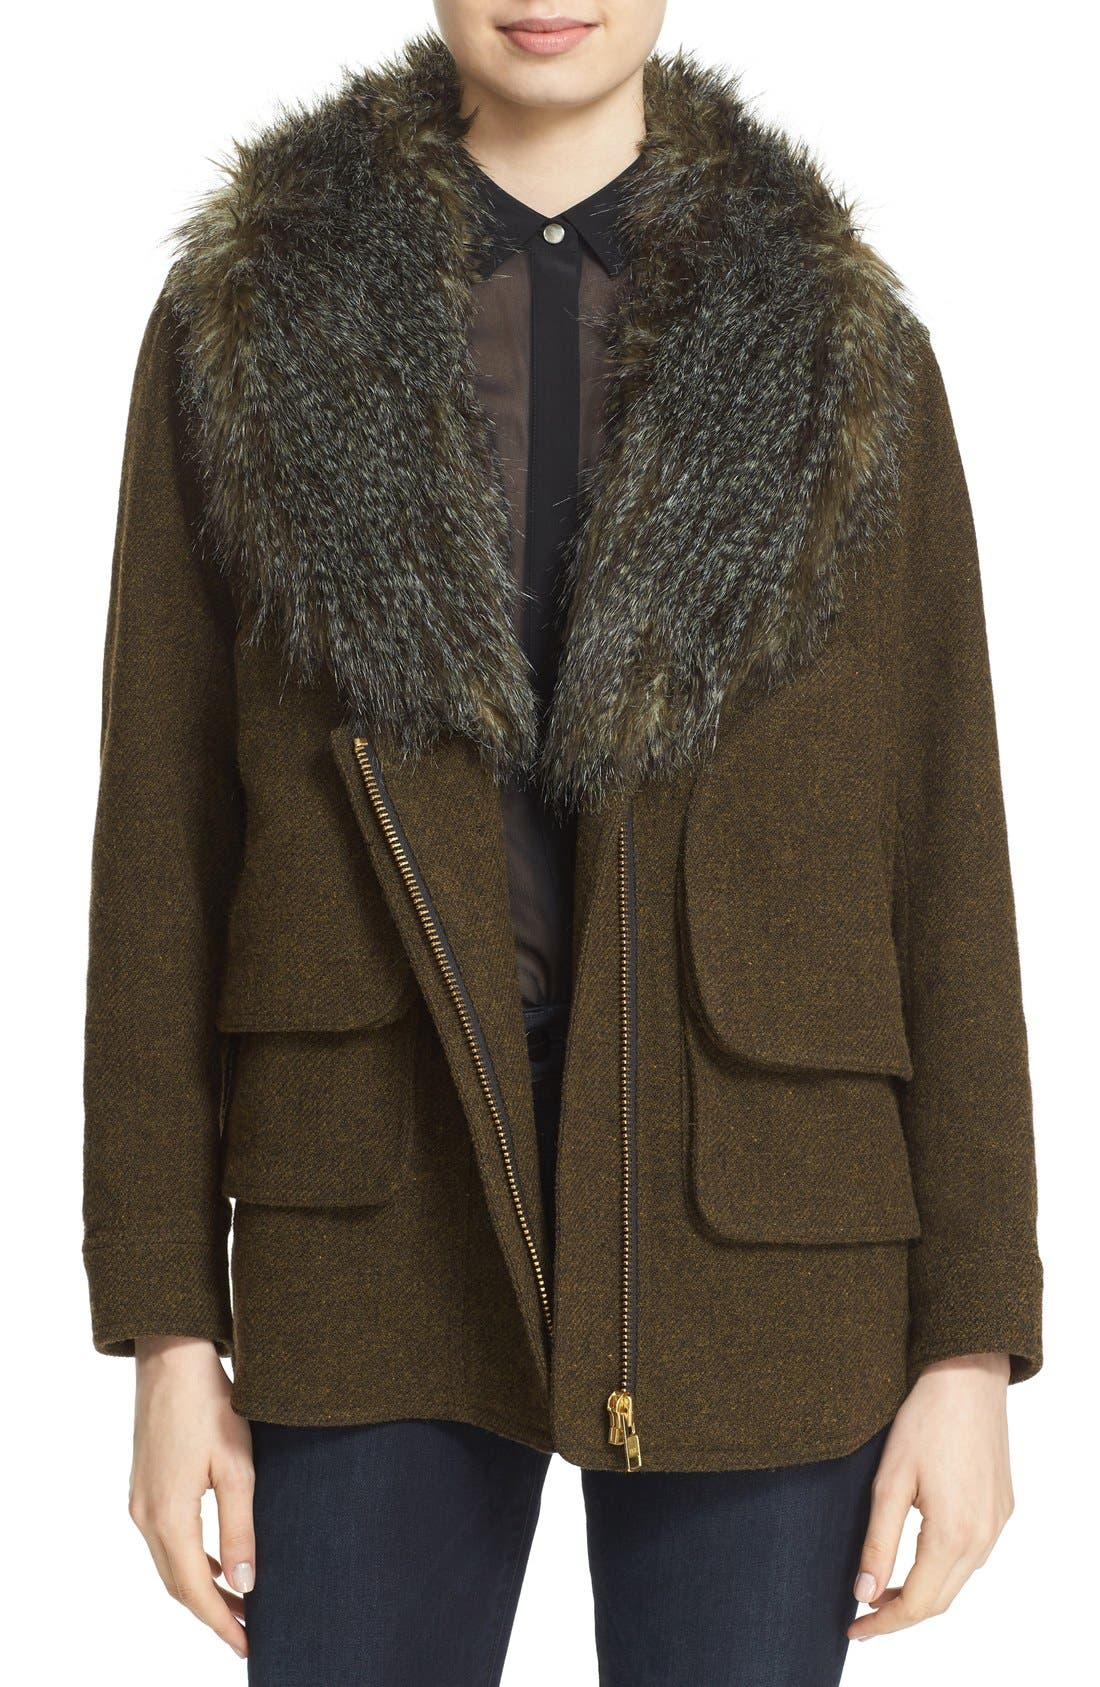 SMYTHE, 'Flak' Wool Blend Jacket with Removable Faux Fur Collar, Main thumbnail 1, color, 300